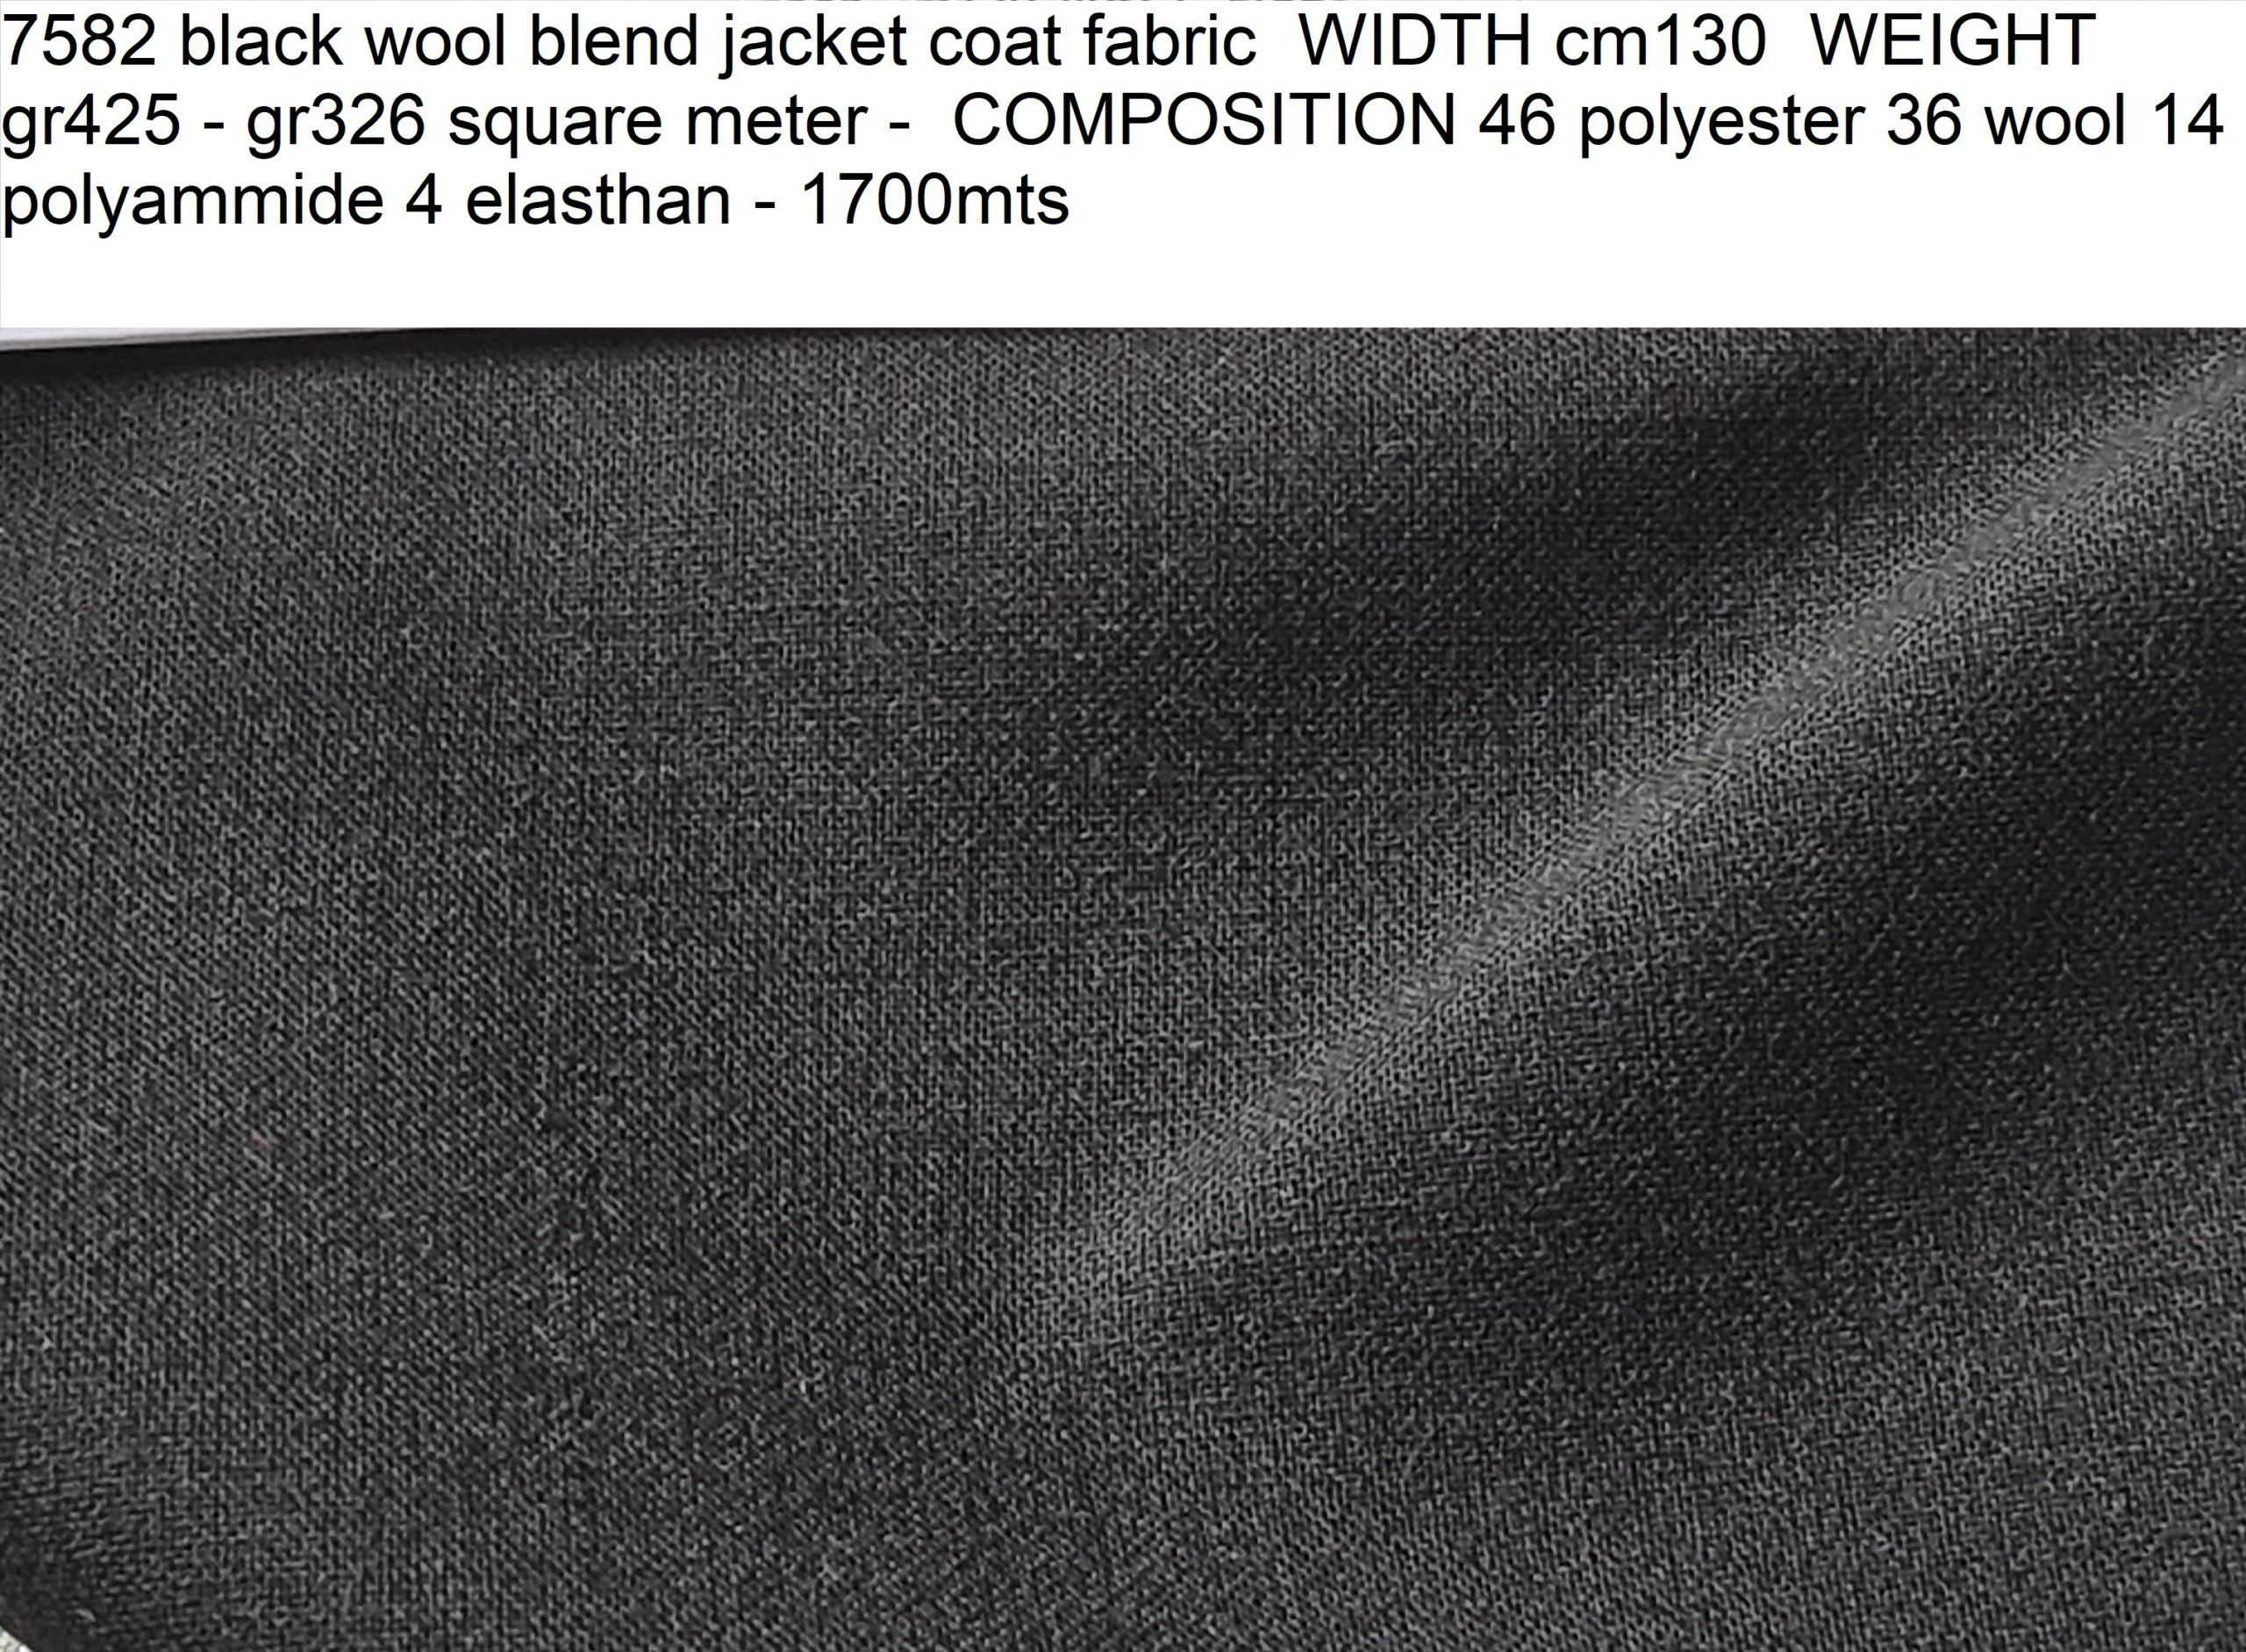 7582 black wool blend jacket coat fabric WIDTH cm130 WEIGHT gr425 - gr326 square meter - COMPOSITION 46 polyester 36 wool 14 polyammide 4 elasthan - 1700mts